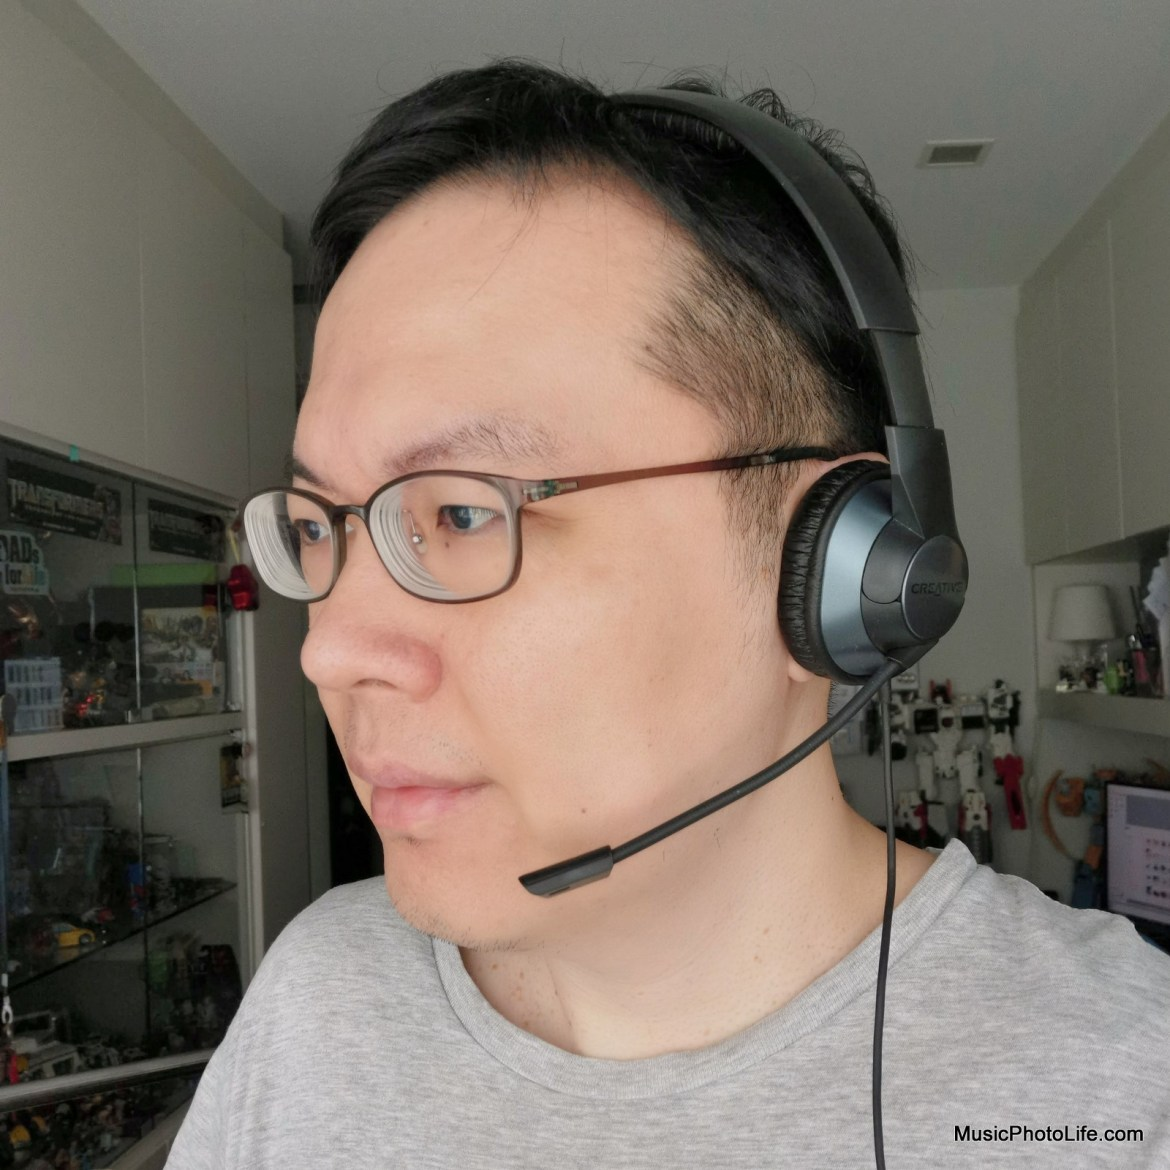 Creative HS-720 V2 USB headset review by Music Photo Life, Singapore tech blog